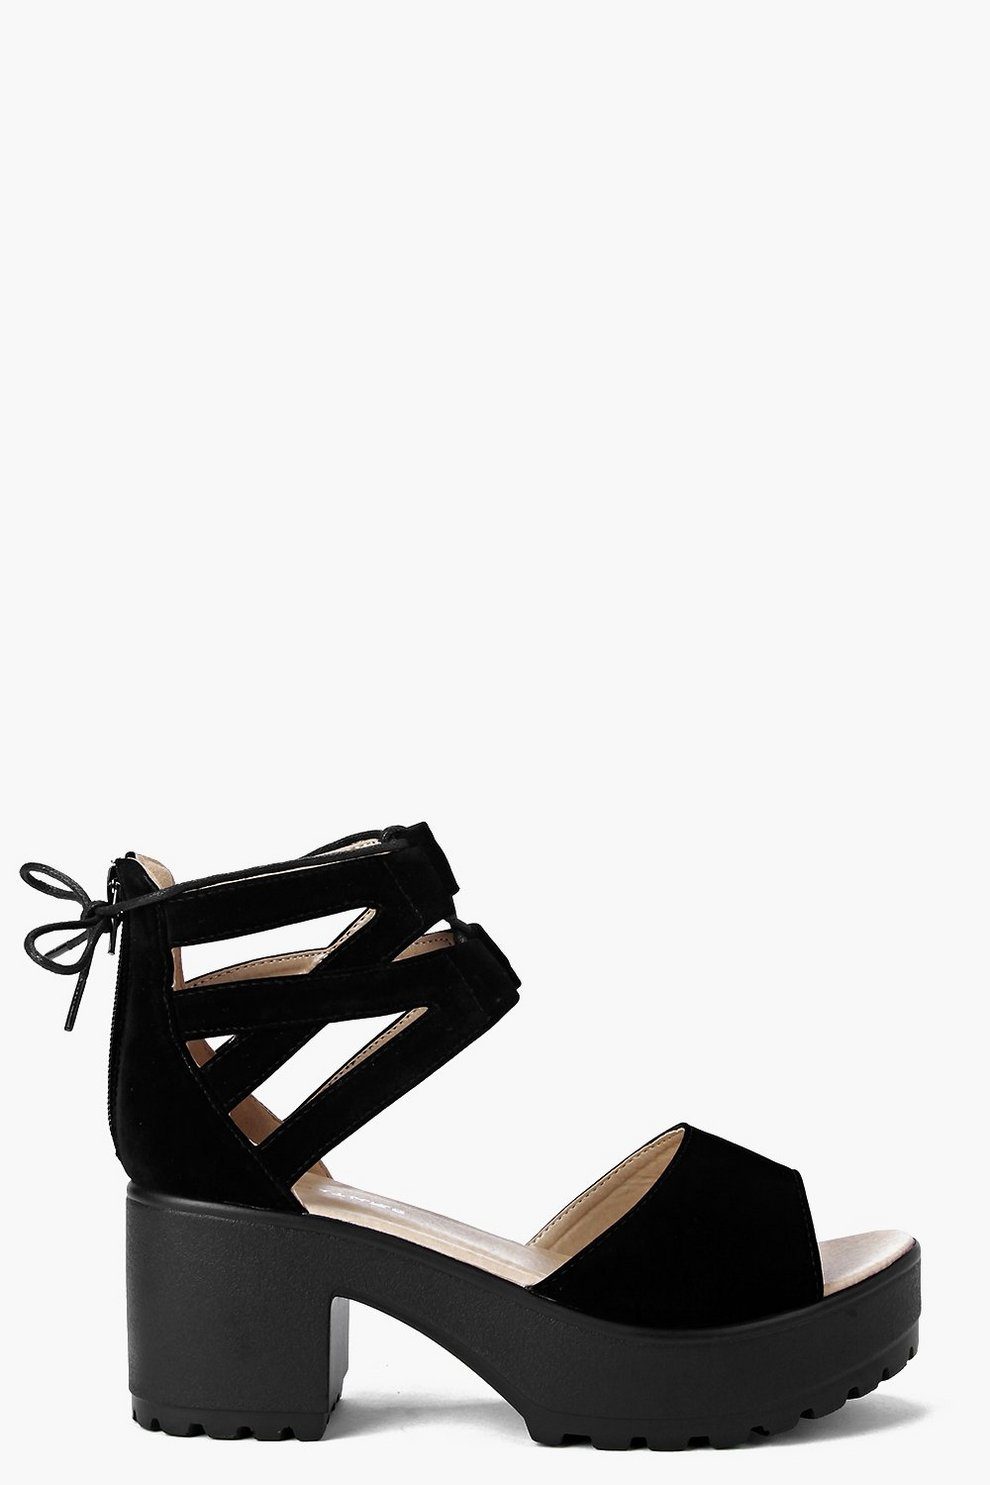 3e4b688a7d2 Amy Lace Up Two Part Cleated Sandal